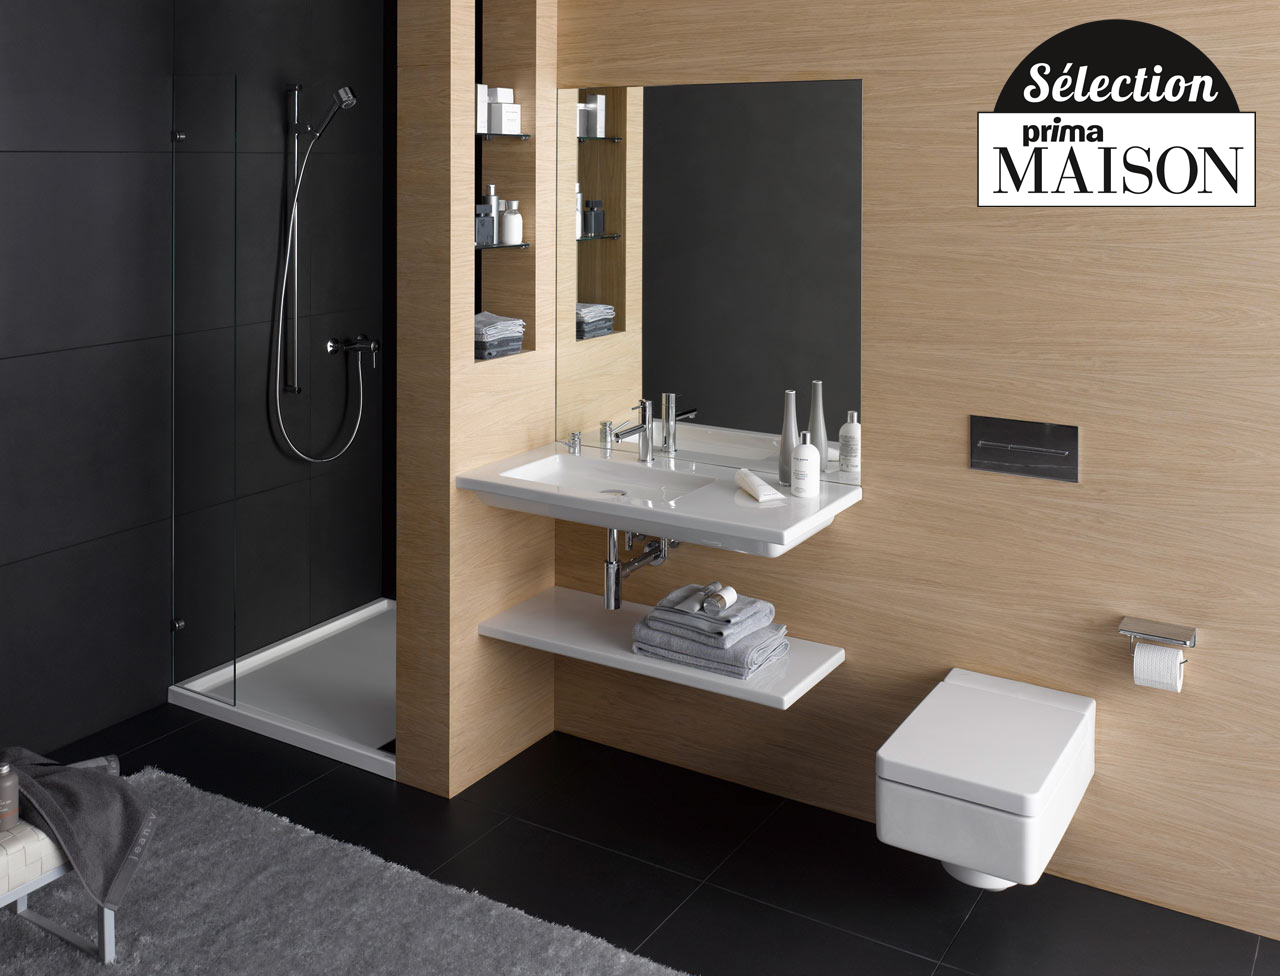 D coration salle de bain 2016 exemples d 39 am nagements for Decoration de salle de bain moderne